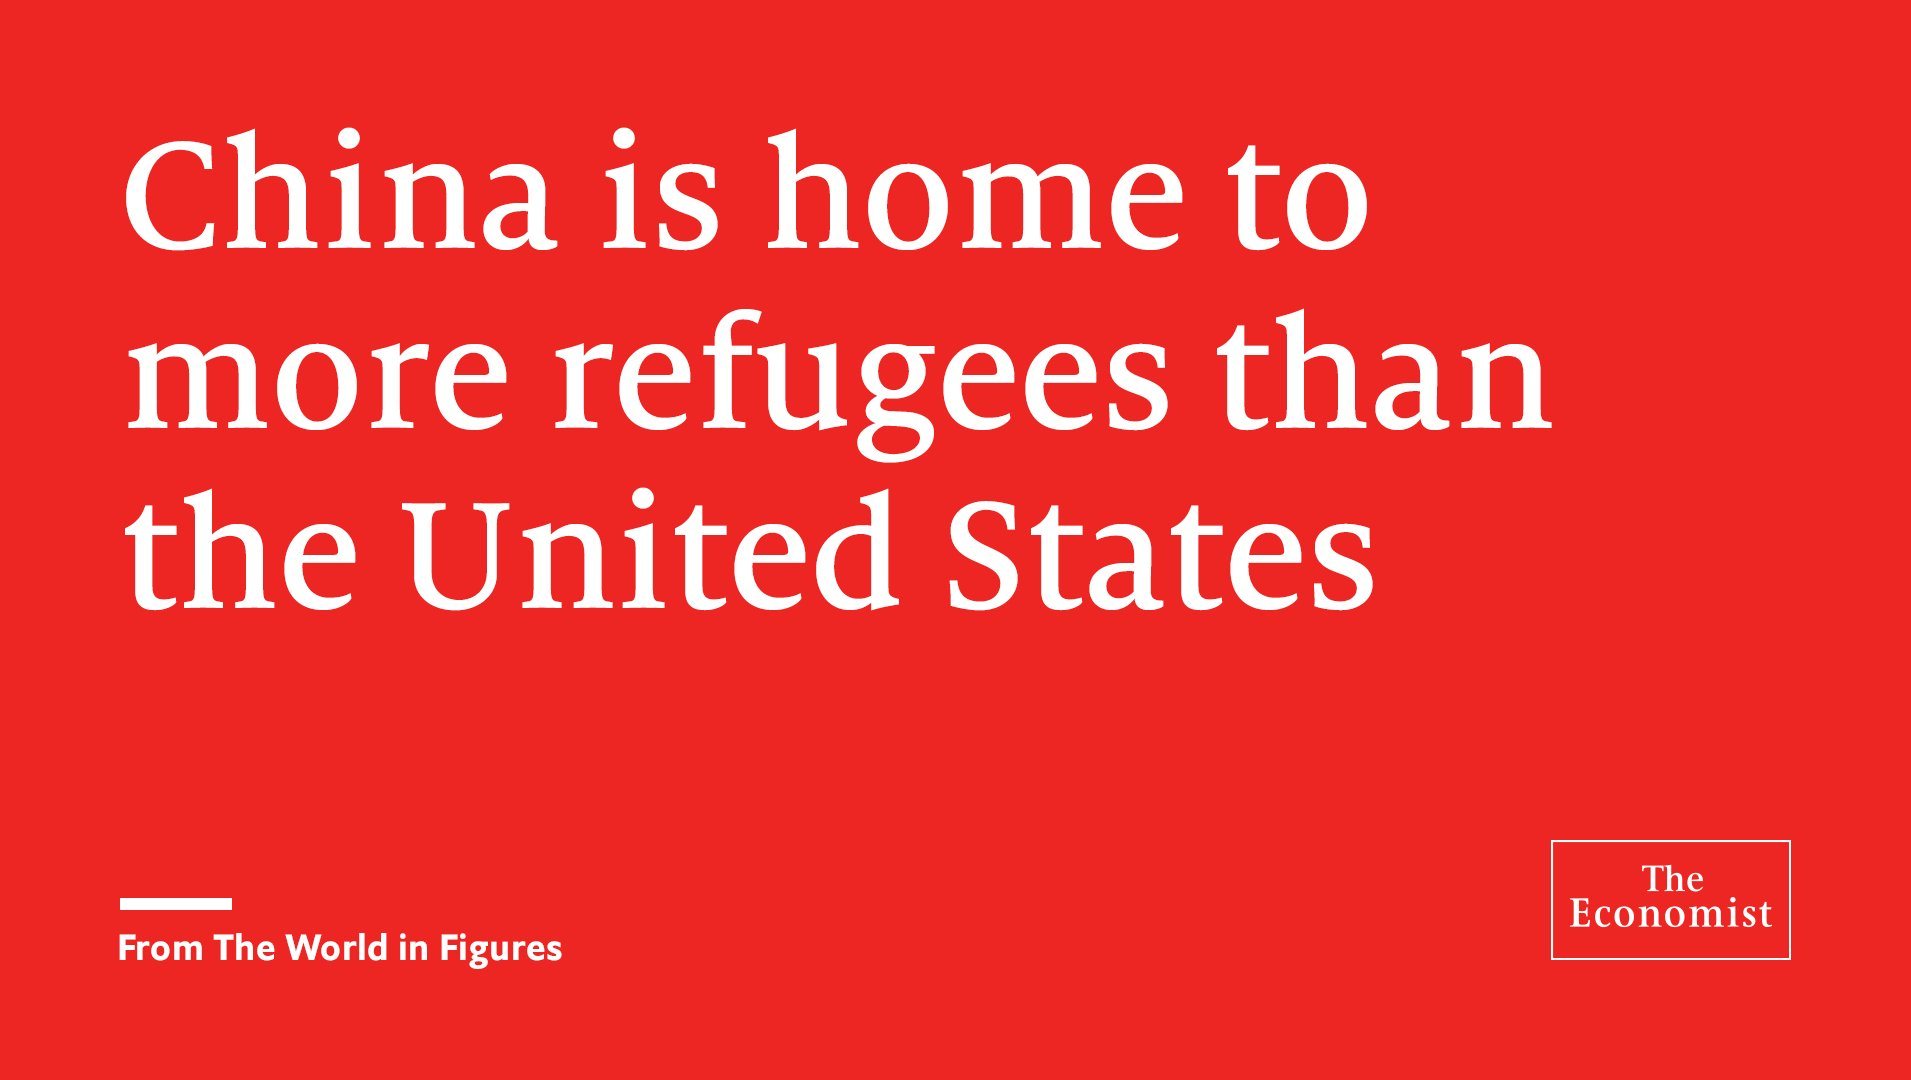 Turkey has the world's largest refugee population. From the World in Figures https://t.co/uy3wcmPSp0 https://t.co/sKfcpiUHUt